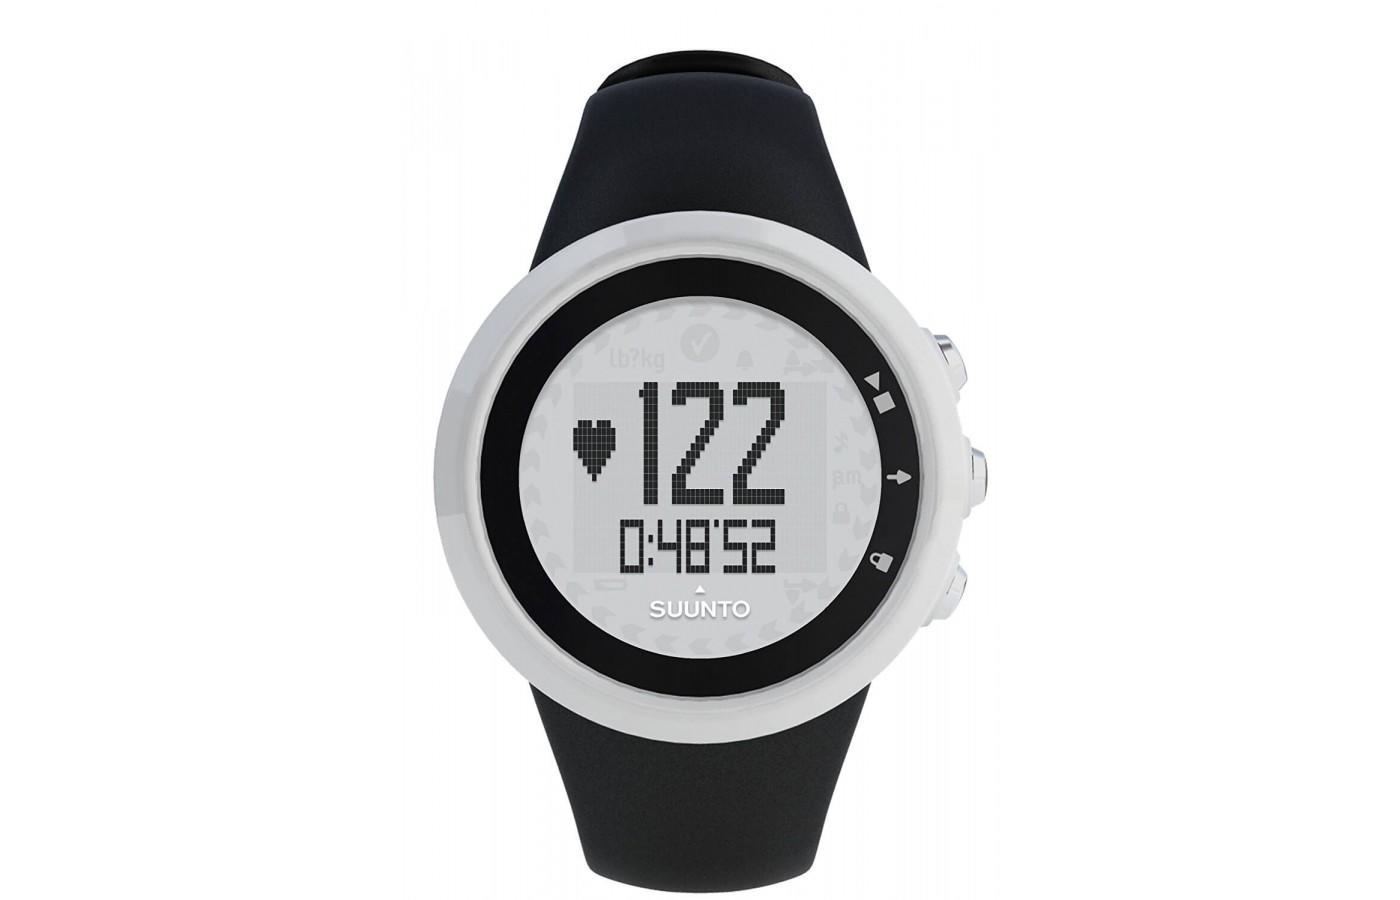 Suunto M1 provides HR data